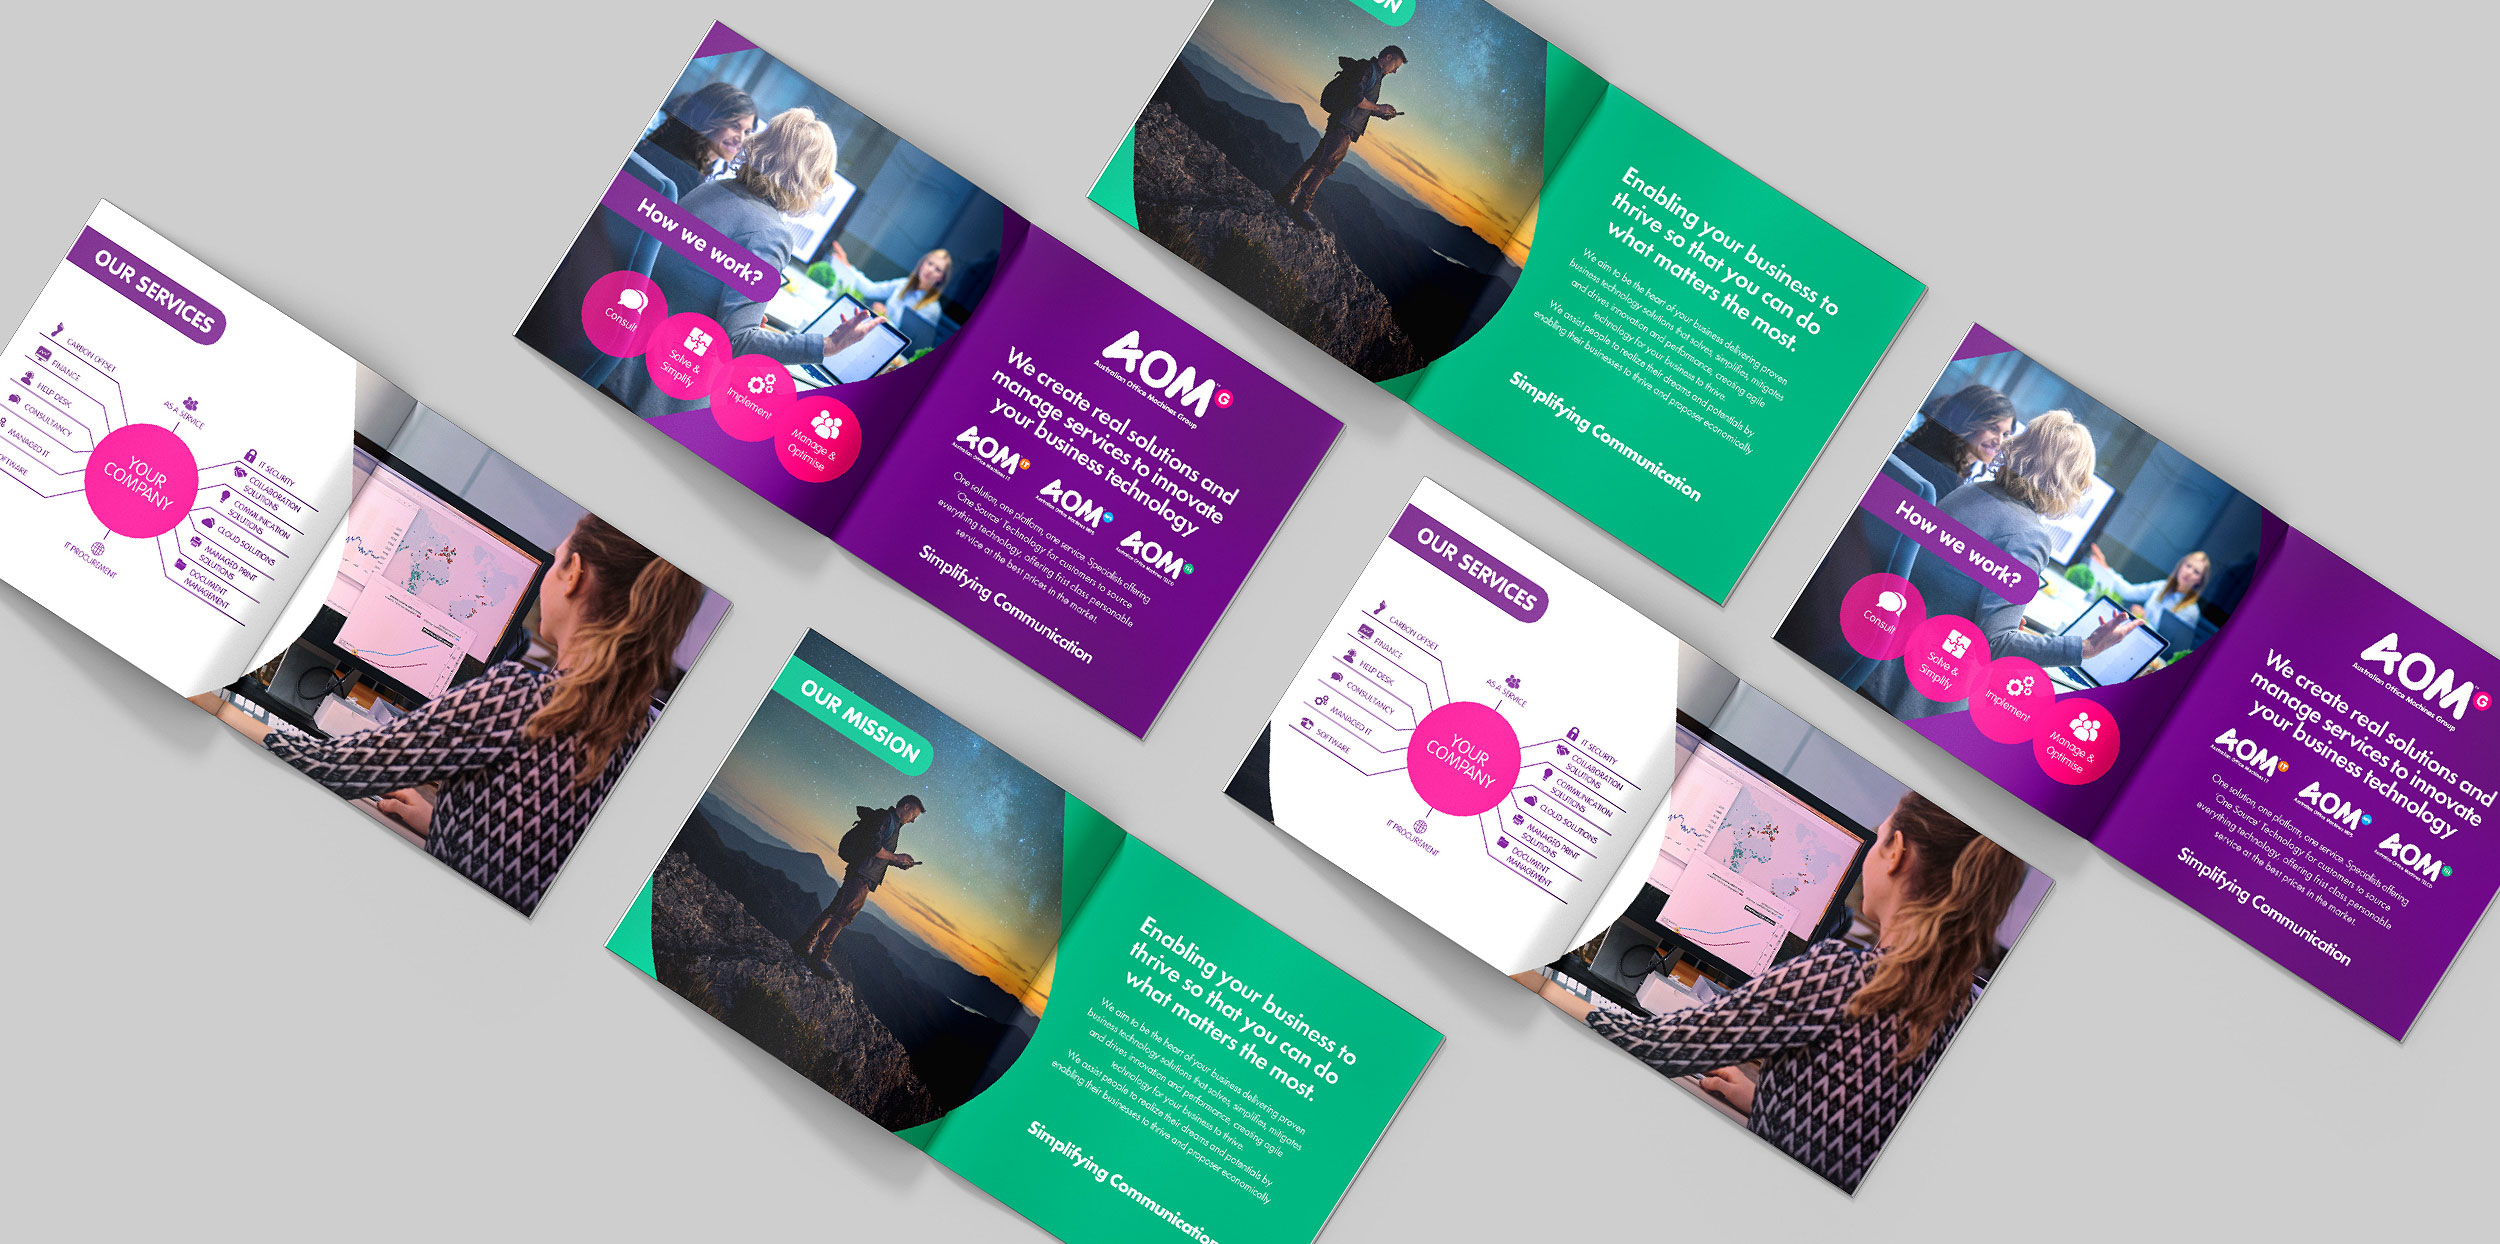 AOM TECHNOLOGY GROUP Branding